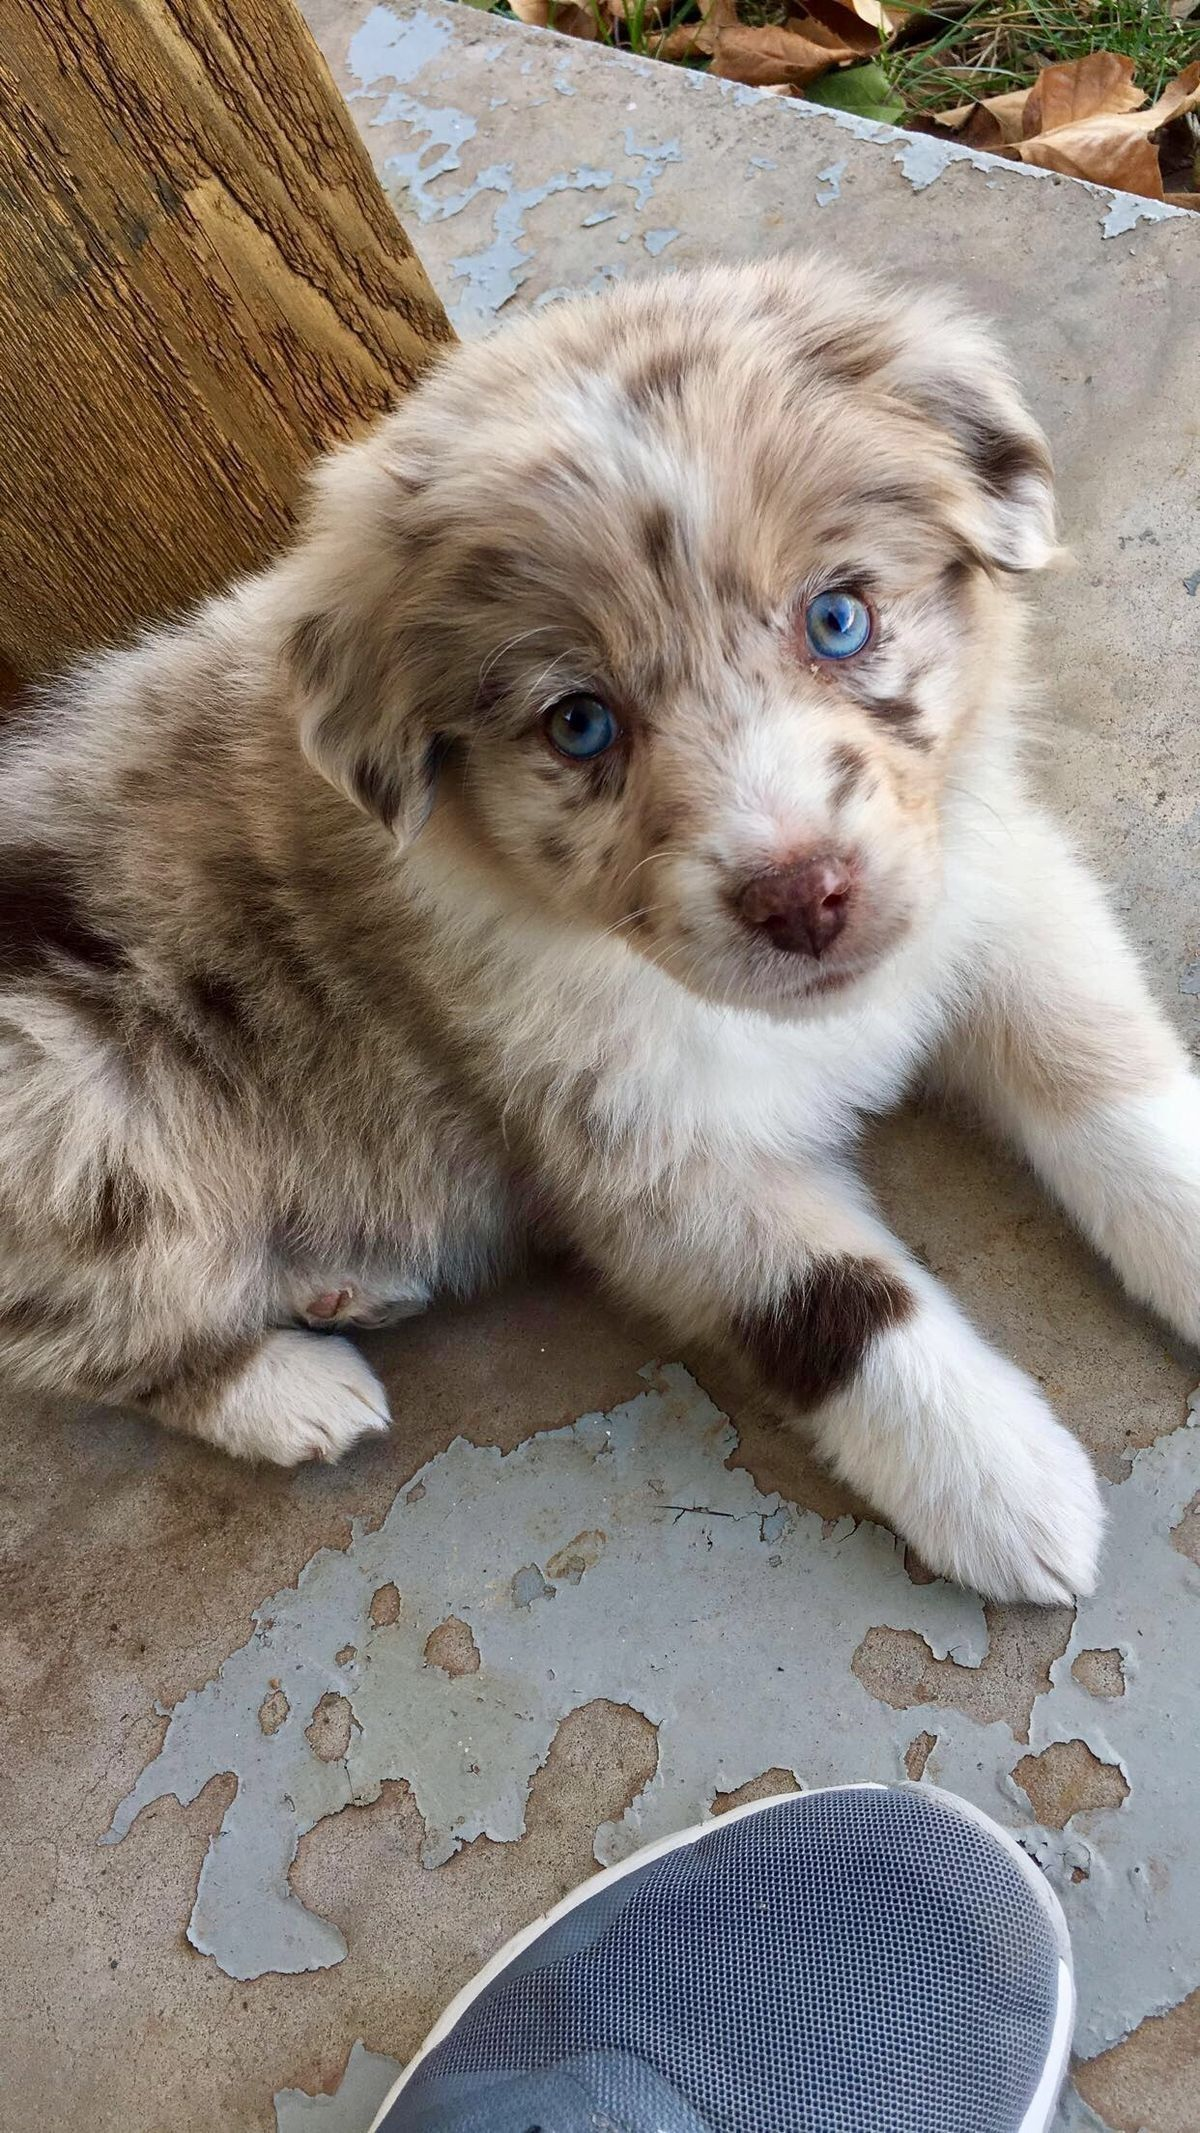 Australian Shepherd Puppy #cutepuppies